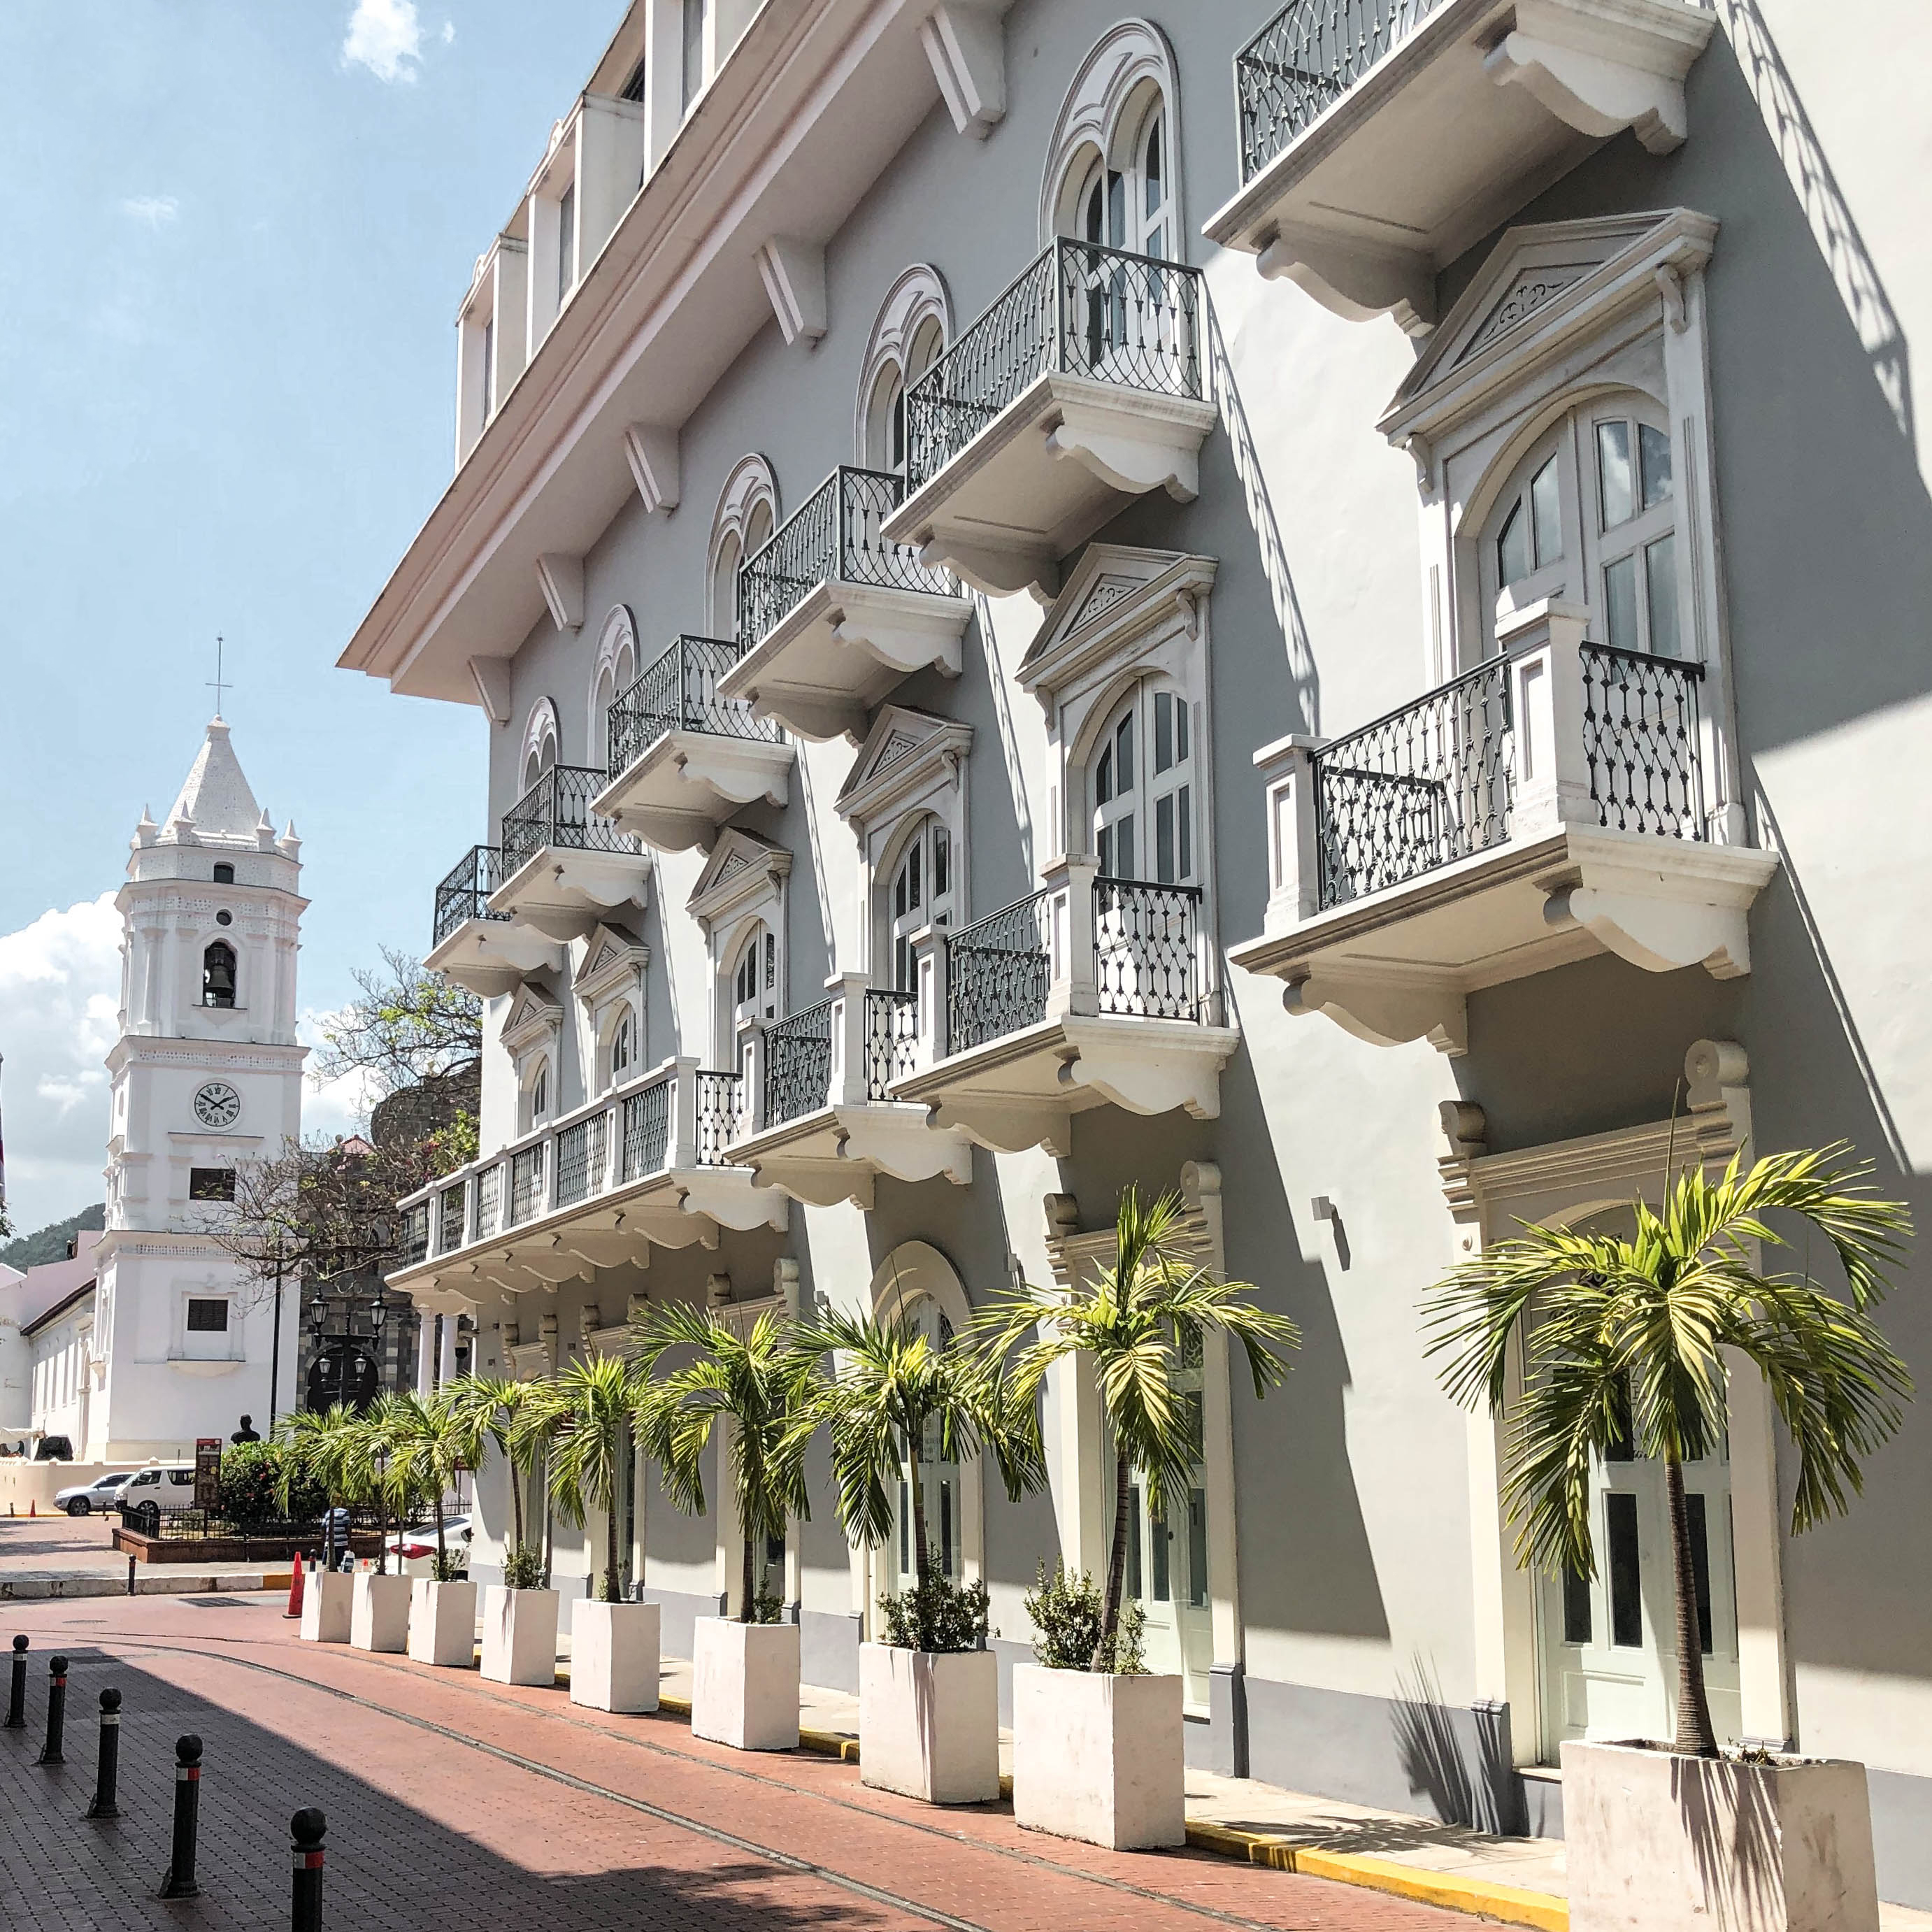 Casco Viejo - View of Plaza de la Catedral from Hotel Central